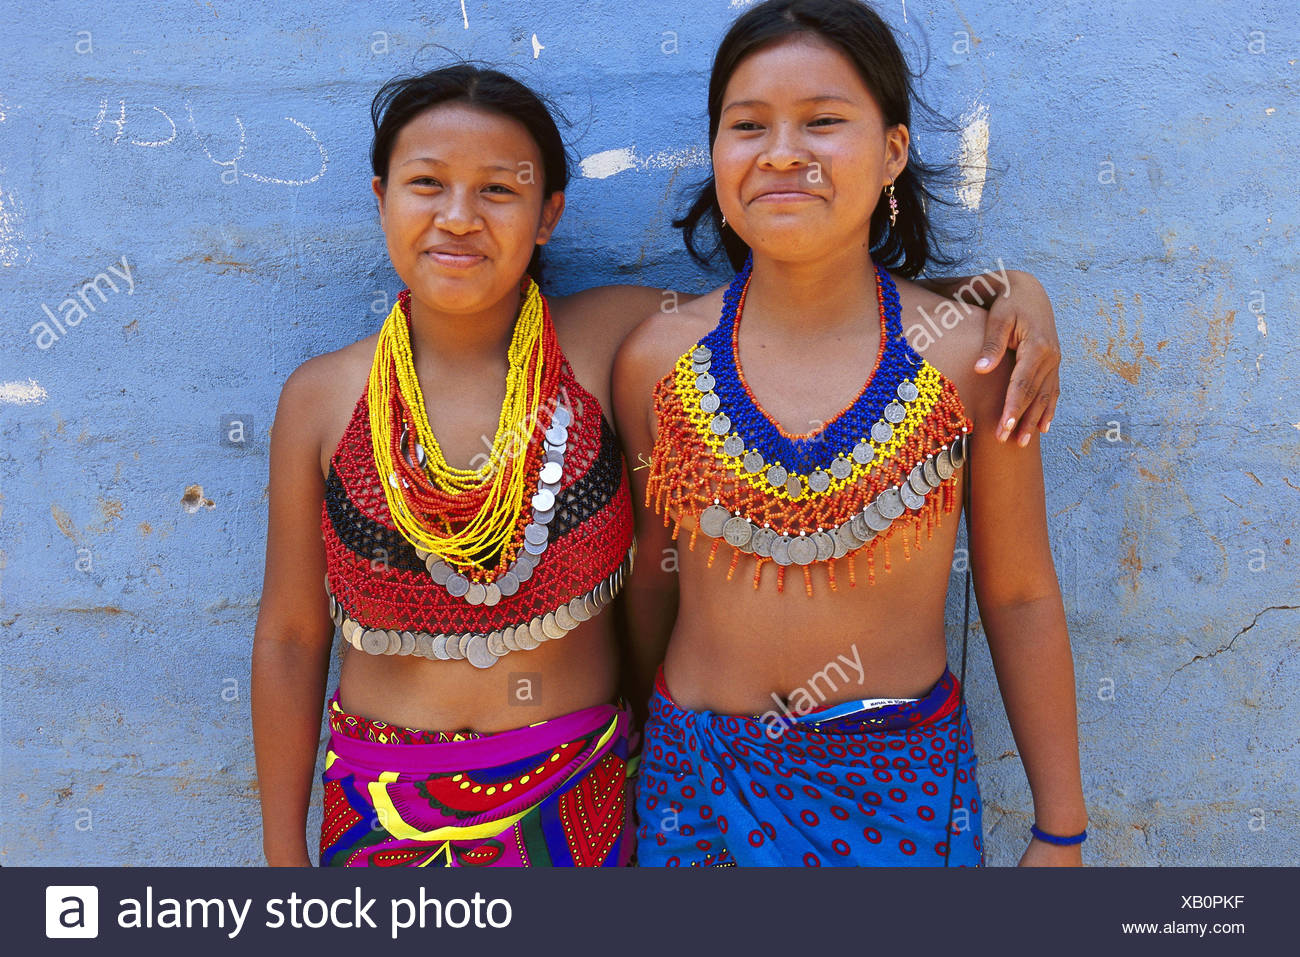 Panama, Chagres national park, Embera Indian, women, half portrait no model release Central America, Embera Indian, Embera strain, tribe, locals, 15-20 years, upper parts of the body freely, view camera, necklaces, catenas, neck jewellery, laugh, happily, arm in arm, friendship, tradition, traditions - Stock Image